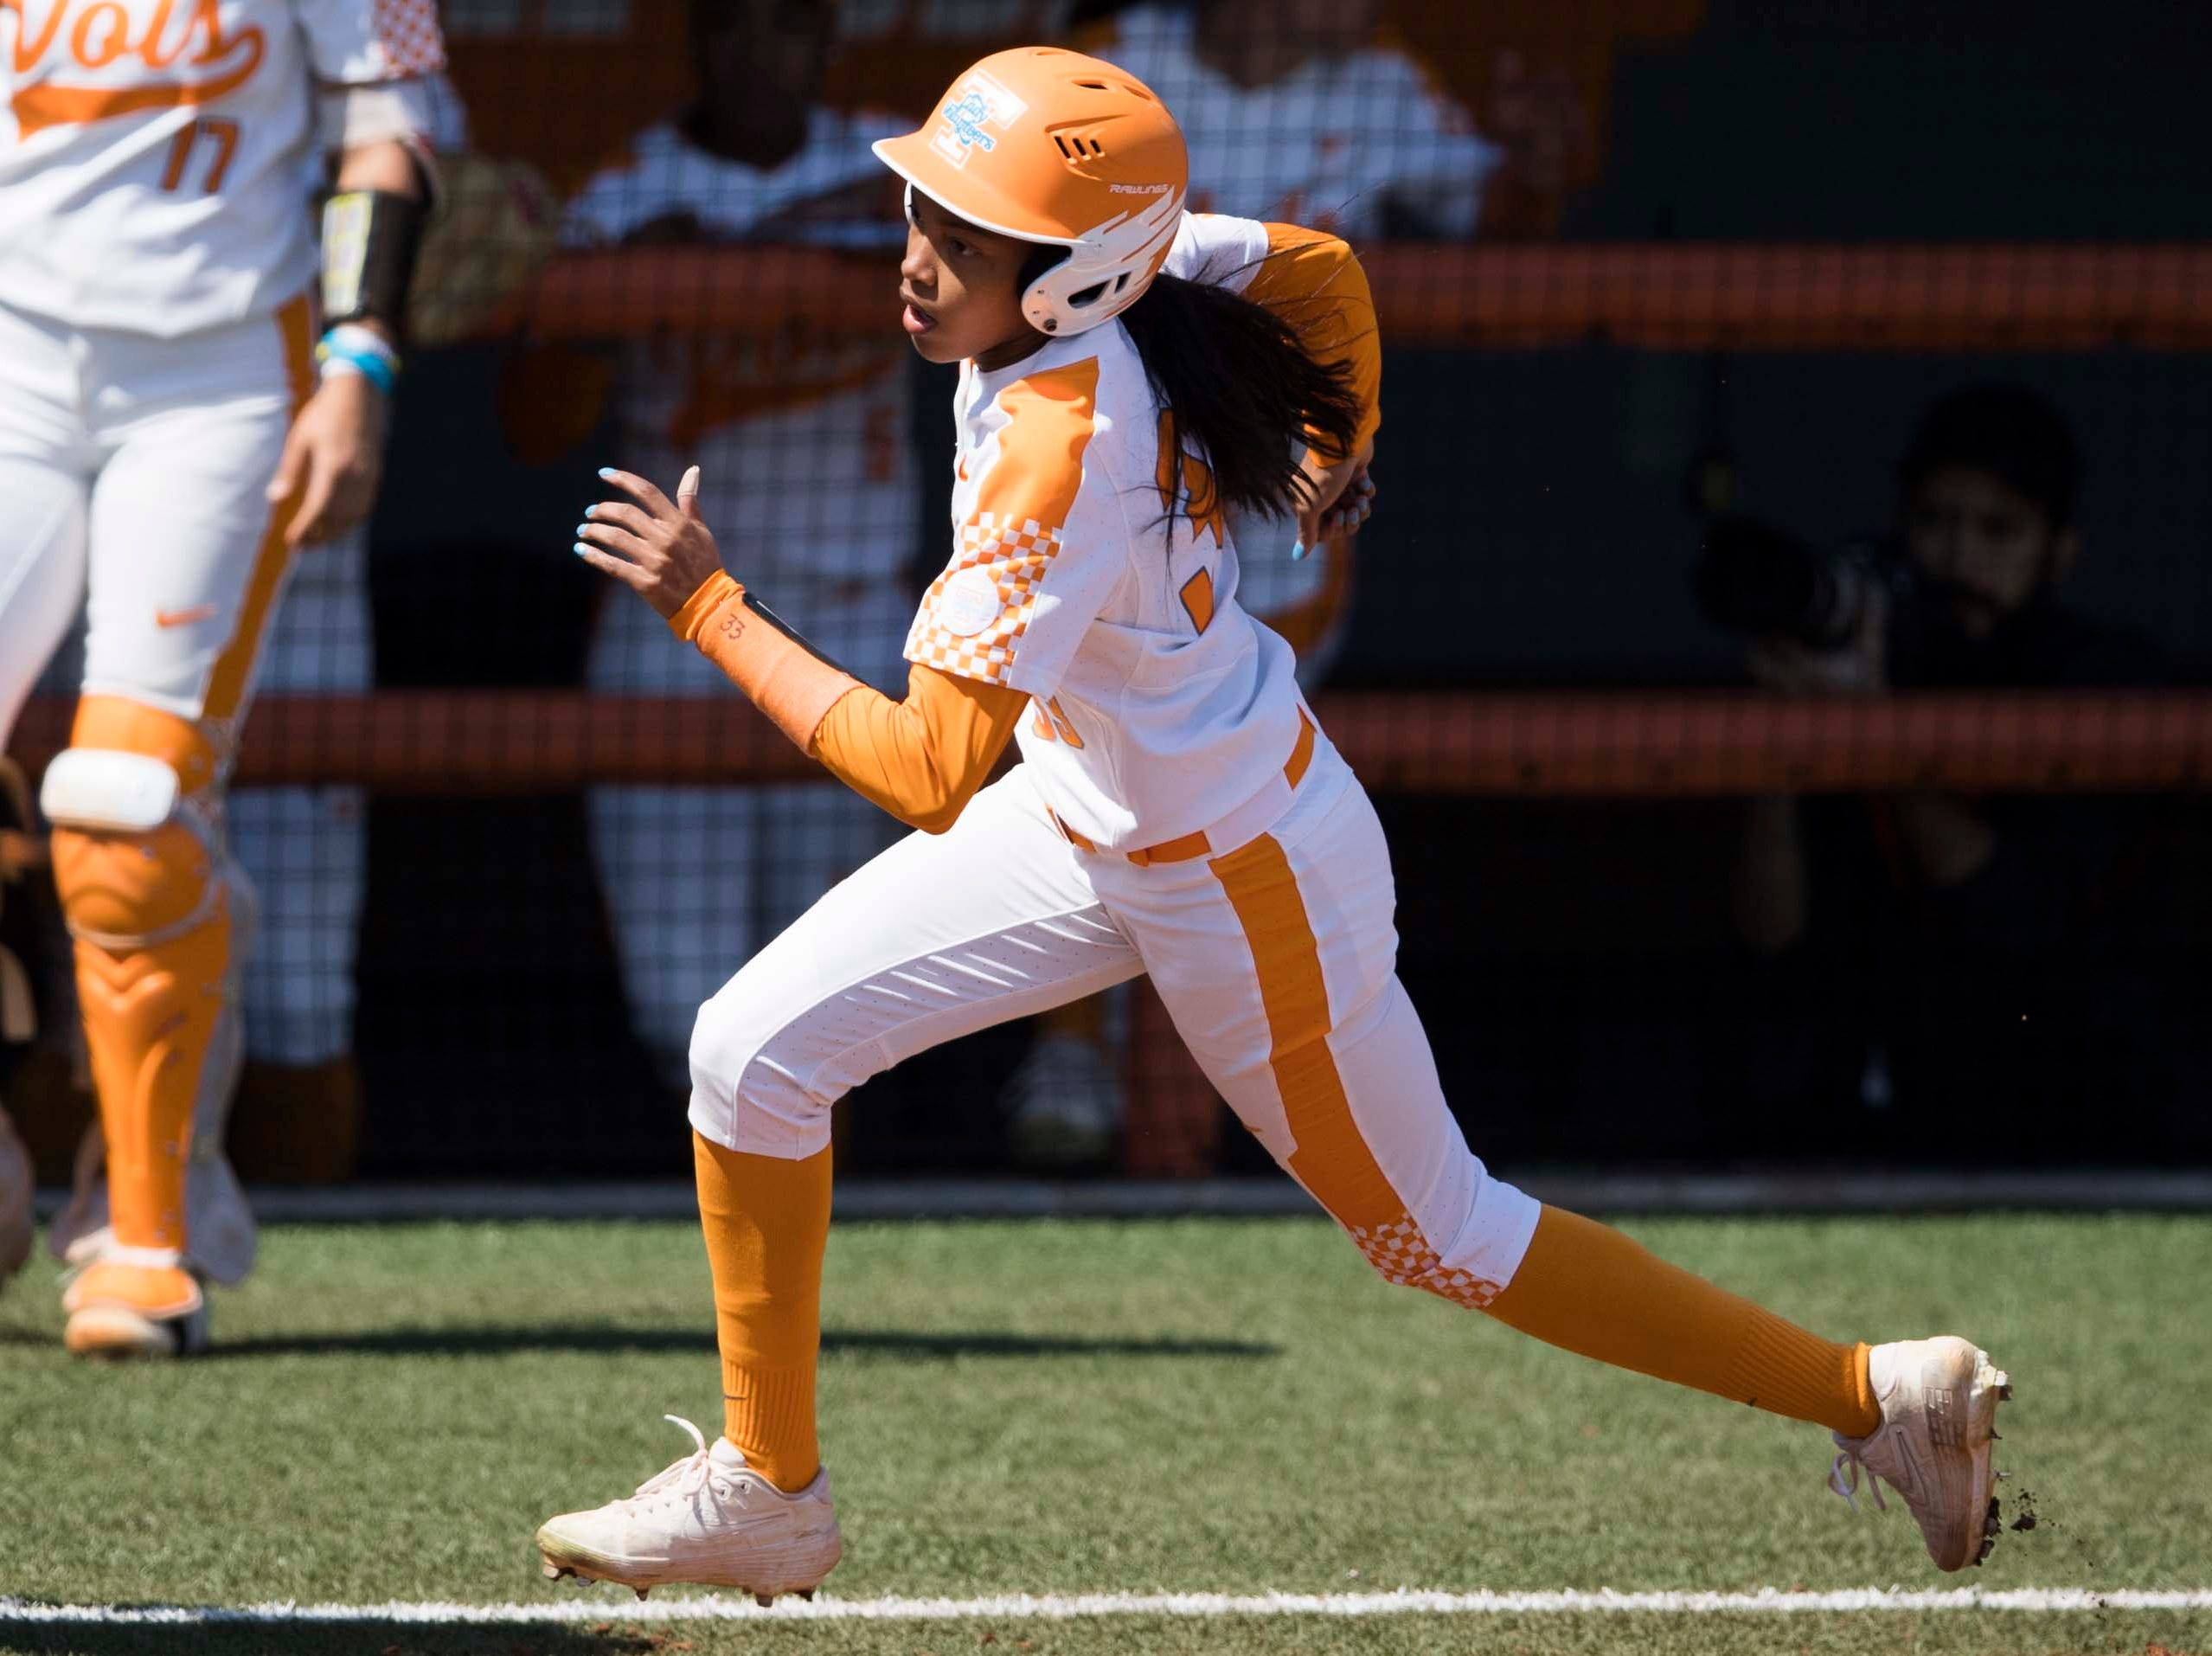 Tennessee outfielder Treasuary Poindexter (33) runs home during a Lady Vols softball game against Arkansas at Sherri Parker Lee stadium on University of Tennessee's campus in Knoxville Sunday, March 24, 2019. The Lady Vols defeated Arkansas.